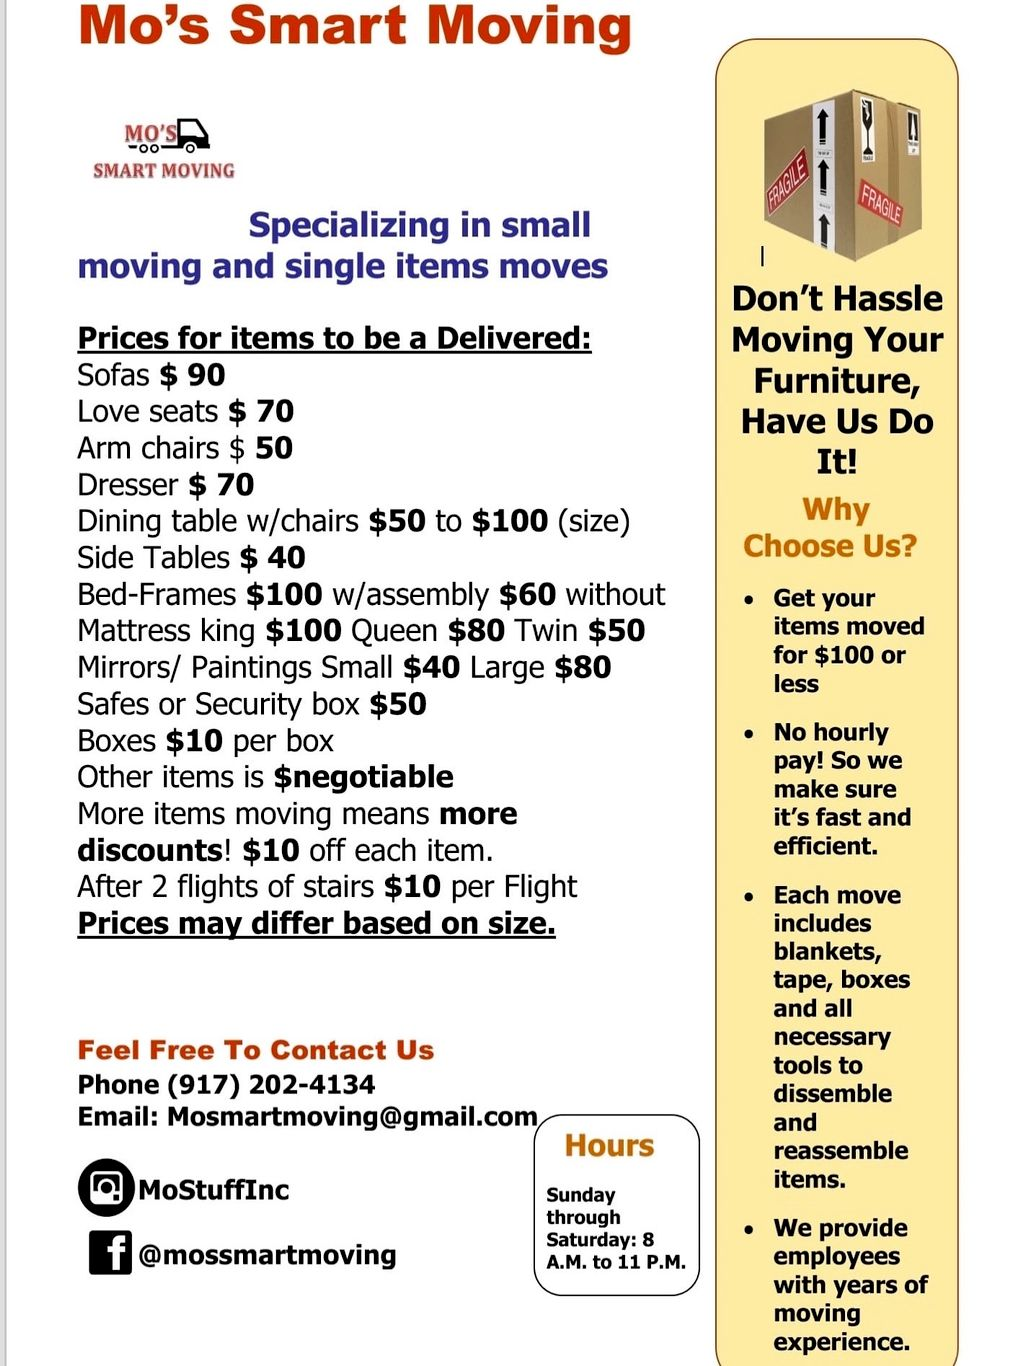 Mo's Smart Moving Furniture Pricing